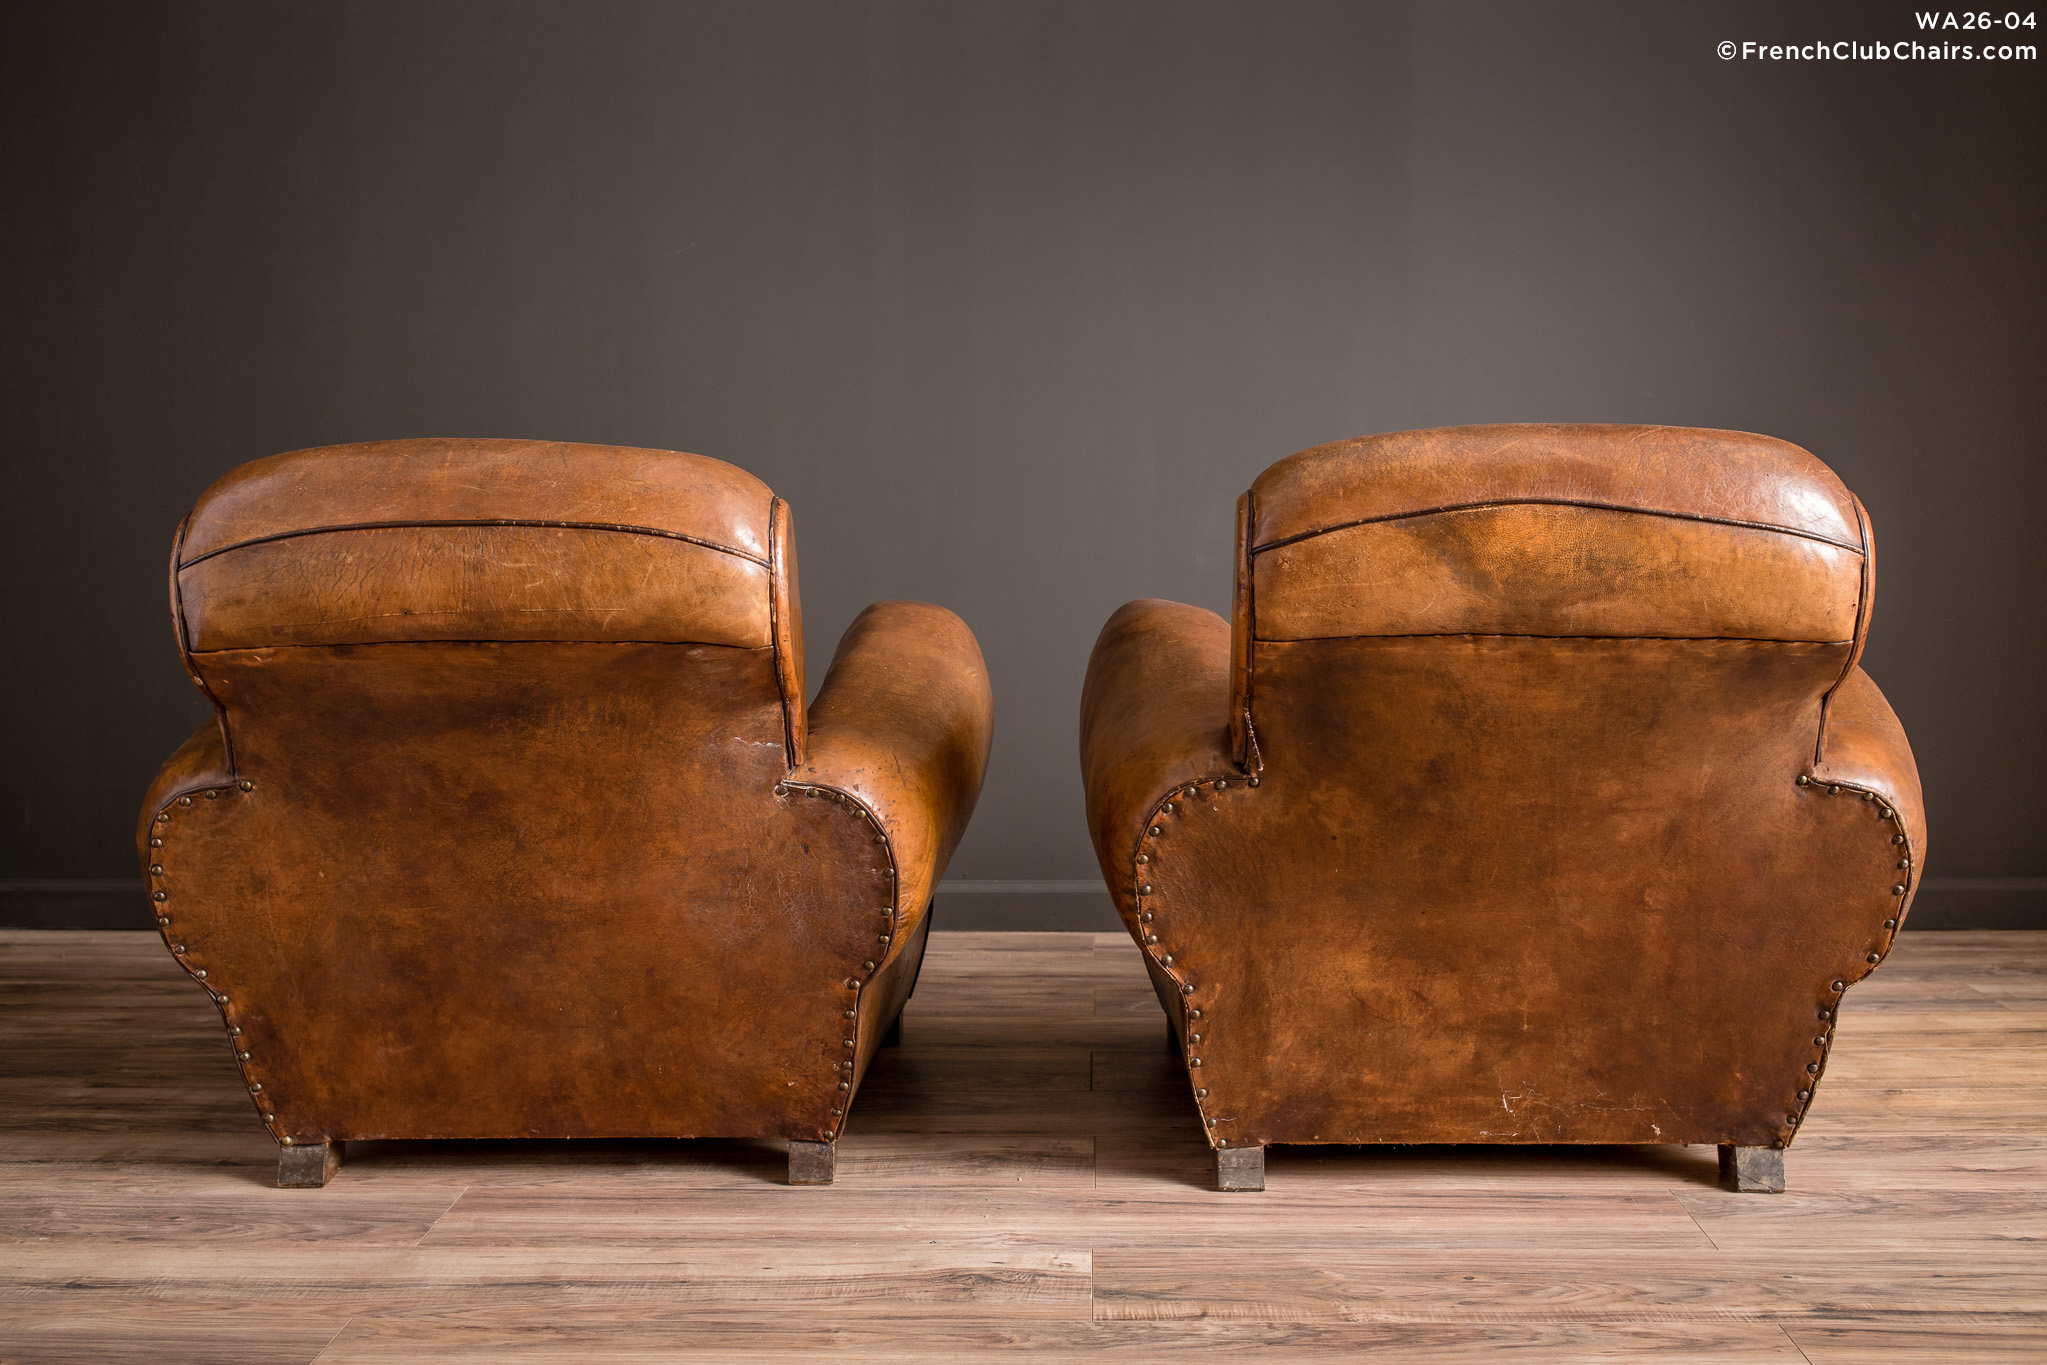 WA_26-04_La_Jura_Rollback_Ancien_Pair_R_2BK-v01-williams-antiks-leather-french-club-chair-wa_fcccom